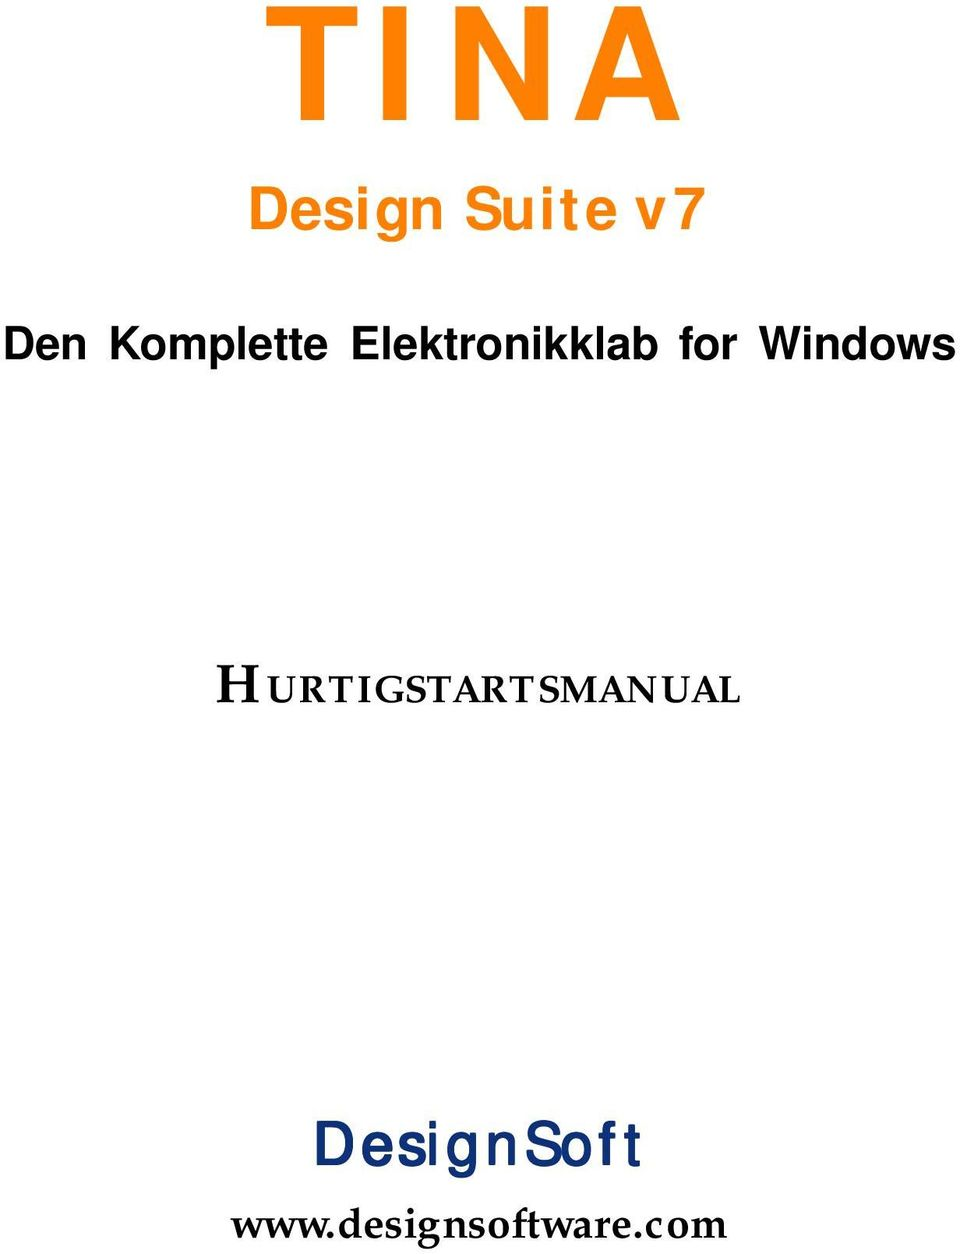 Windows HURTIGSTARTSMANUAL